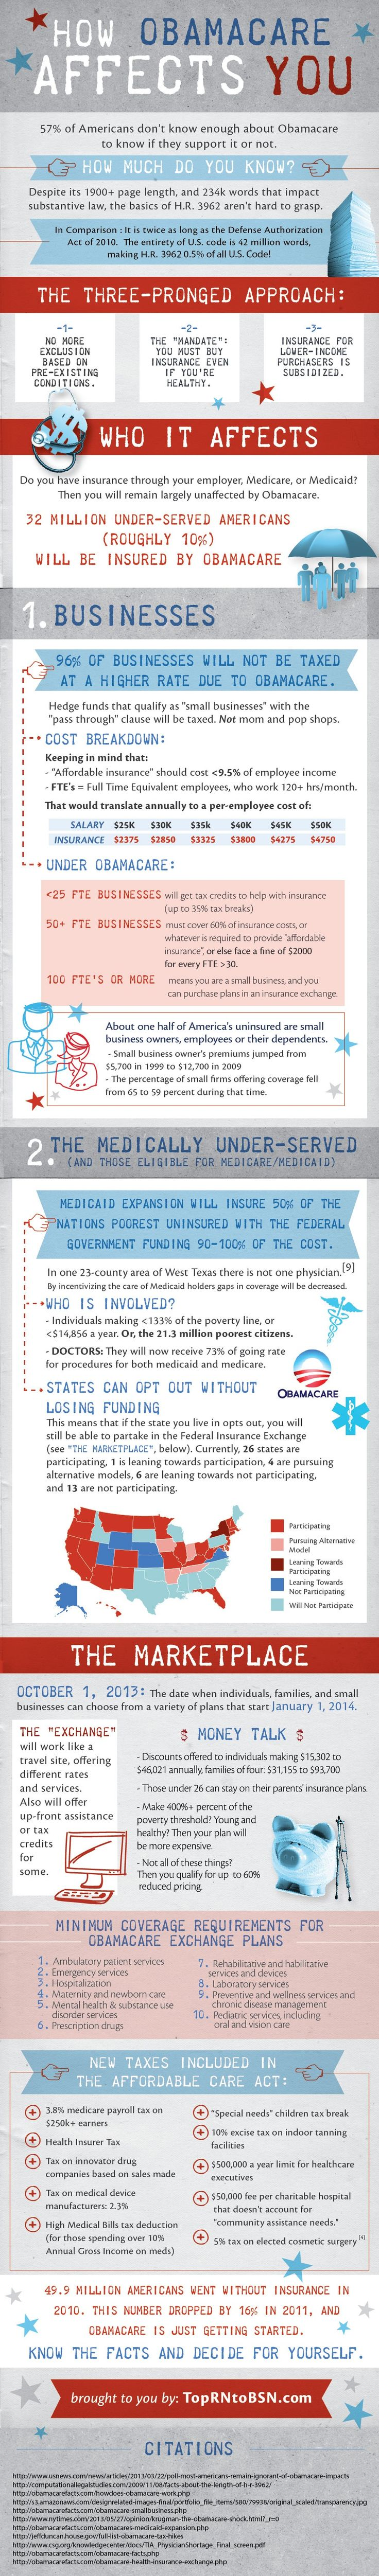 An objective look at the affects of Obamacare on businesses and individuals in the United States.